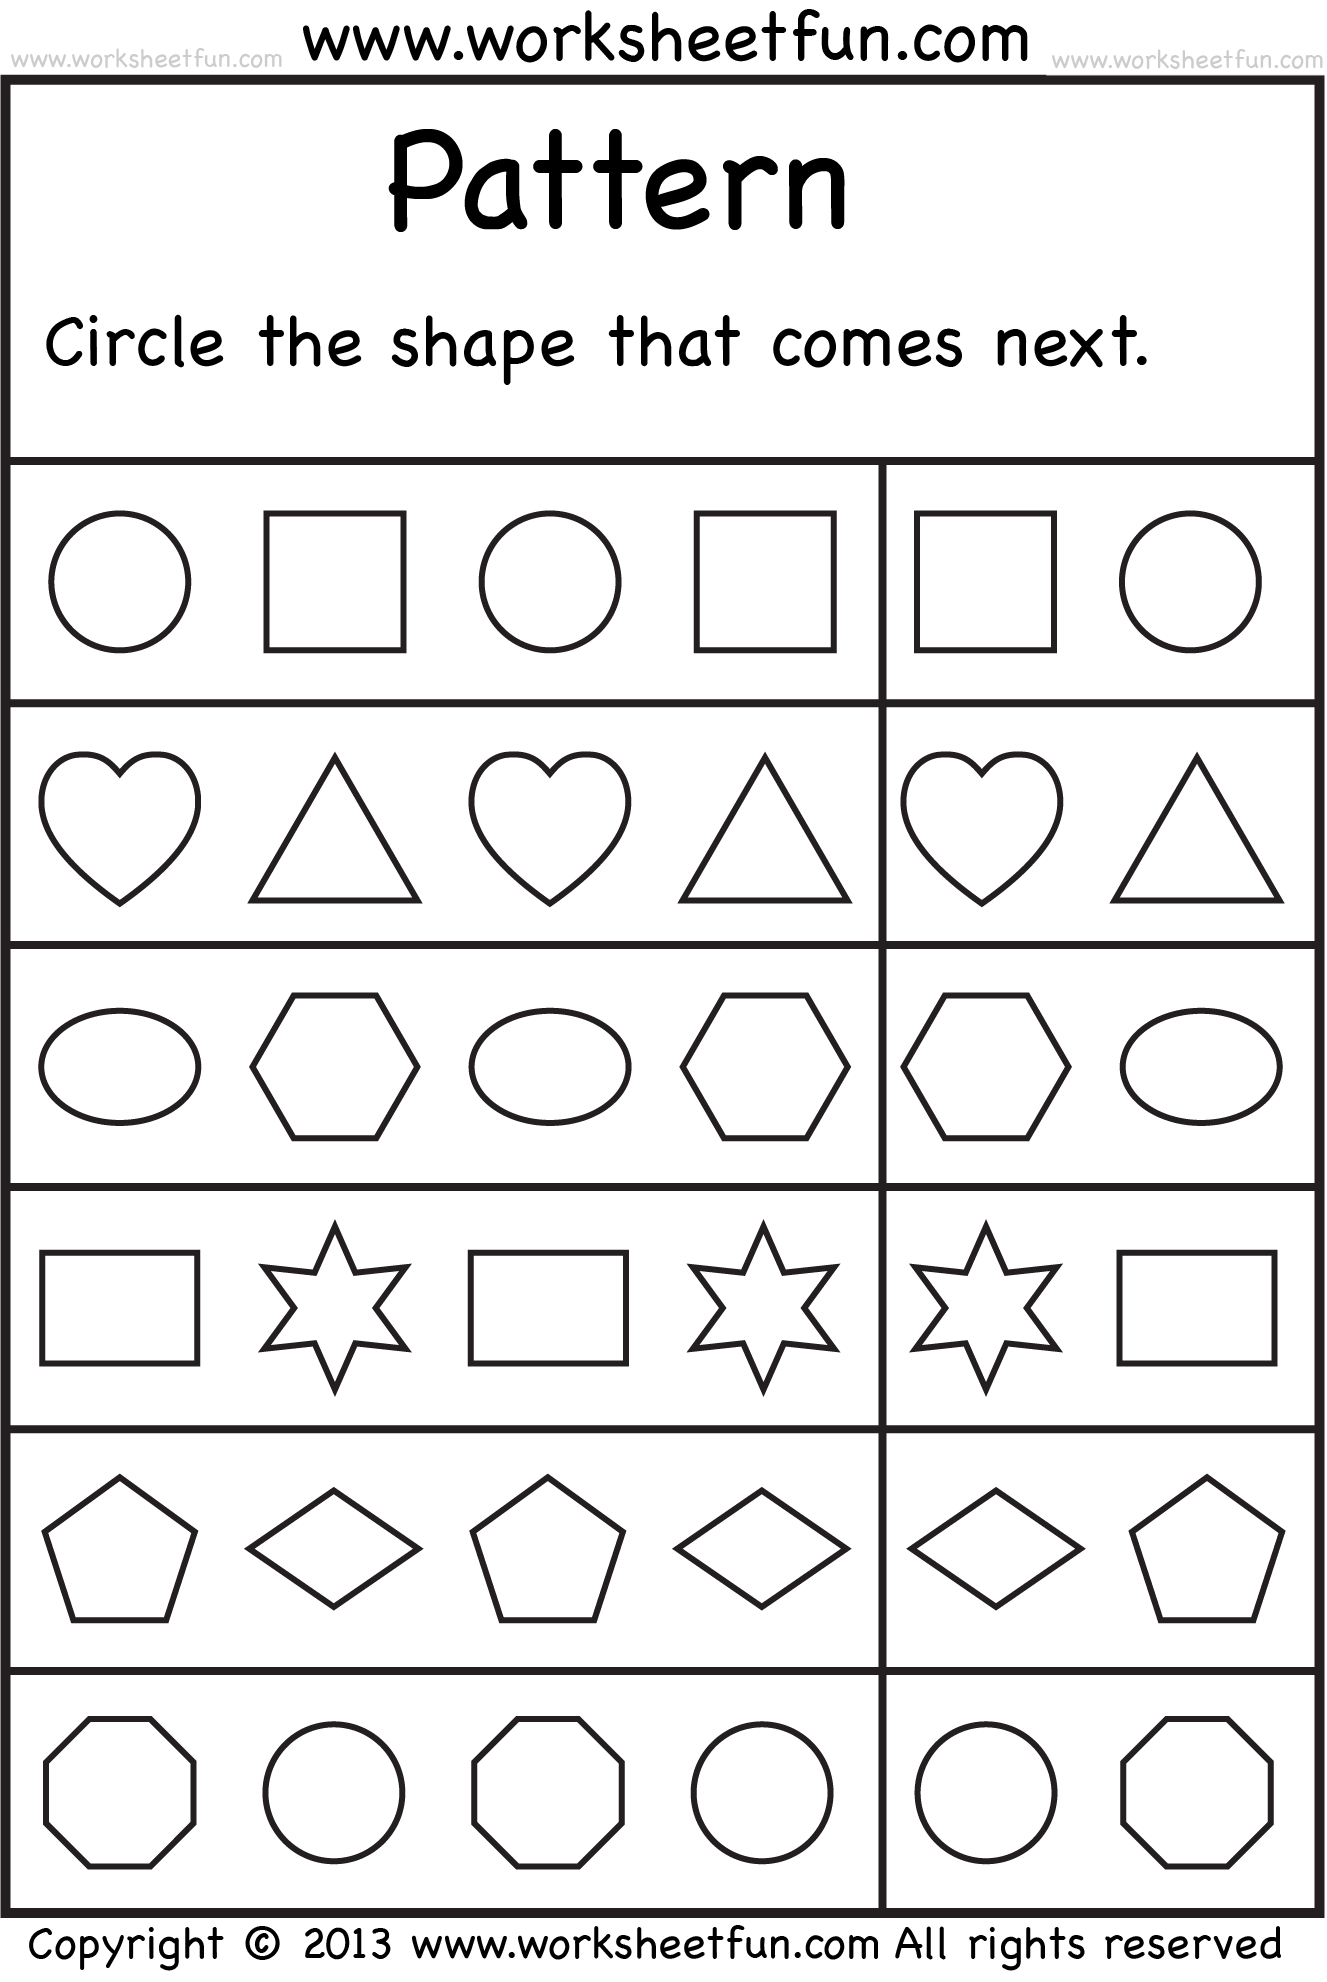 Weirdmailus  Pretty  Images About School Worksheets On Pinterest  Number Words  With Entrancing  Images About School Worksheets On Pinterest  Number Words Alphabet Worksheets And Free Printable Kindergarten Worksheets With Beauteous Parts Of The Book Worksheets Also Science Worksheets Grade  In Addition Blank Worksheet Templates And Topic Main Idea And Supporting Details Worksheets As Well As First Grade Inference Worksheets Additionally Drawing Line Graphs Worksheets From Pinterestcom With Weirdmailus  Entrancing  Images About School Worksheets On Pinterest  Number Words  With Beauteous  Images About School Worksheets On Pinterest  Number Words Alphabet Worksheets And Free Printable Kindergarten Worksheets And Pretty Parts Of The Book Worksheets Also Science Worksheets Grade  In Addition Blank Worksheet Templates From Pinterestcom